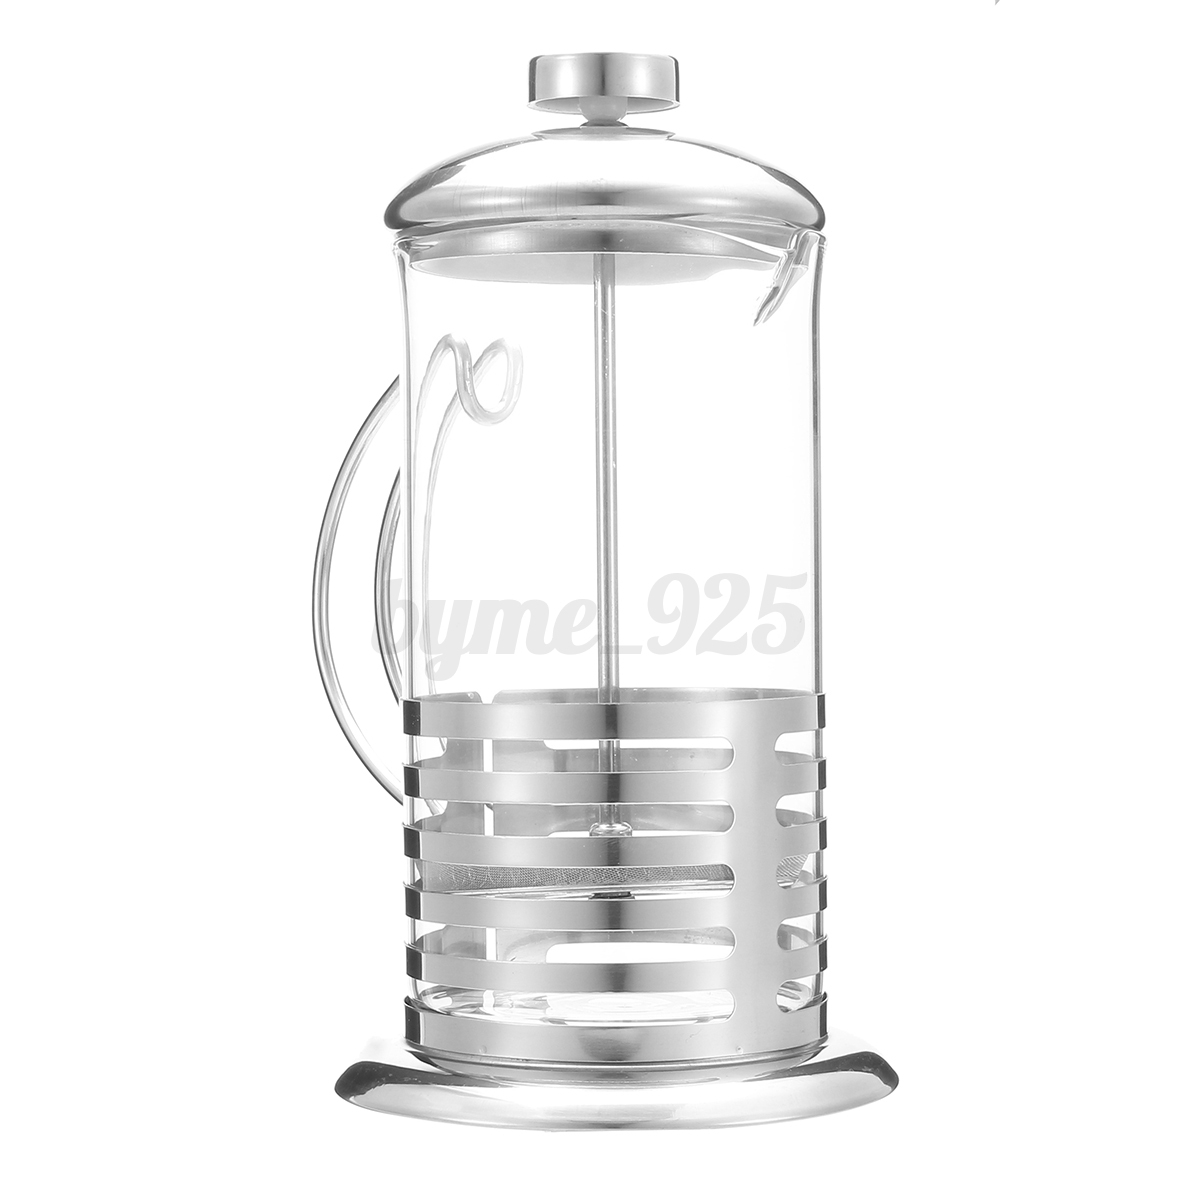 350 600 800ml stainless steel press coffee cup tea maker cafetiere filter french ebay. Black Bedroom Furniture Sets. Home Design Ideas